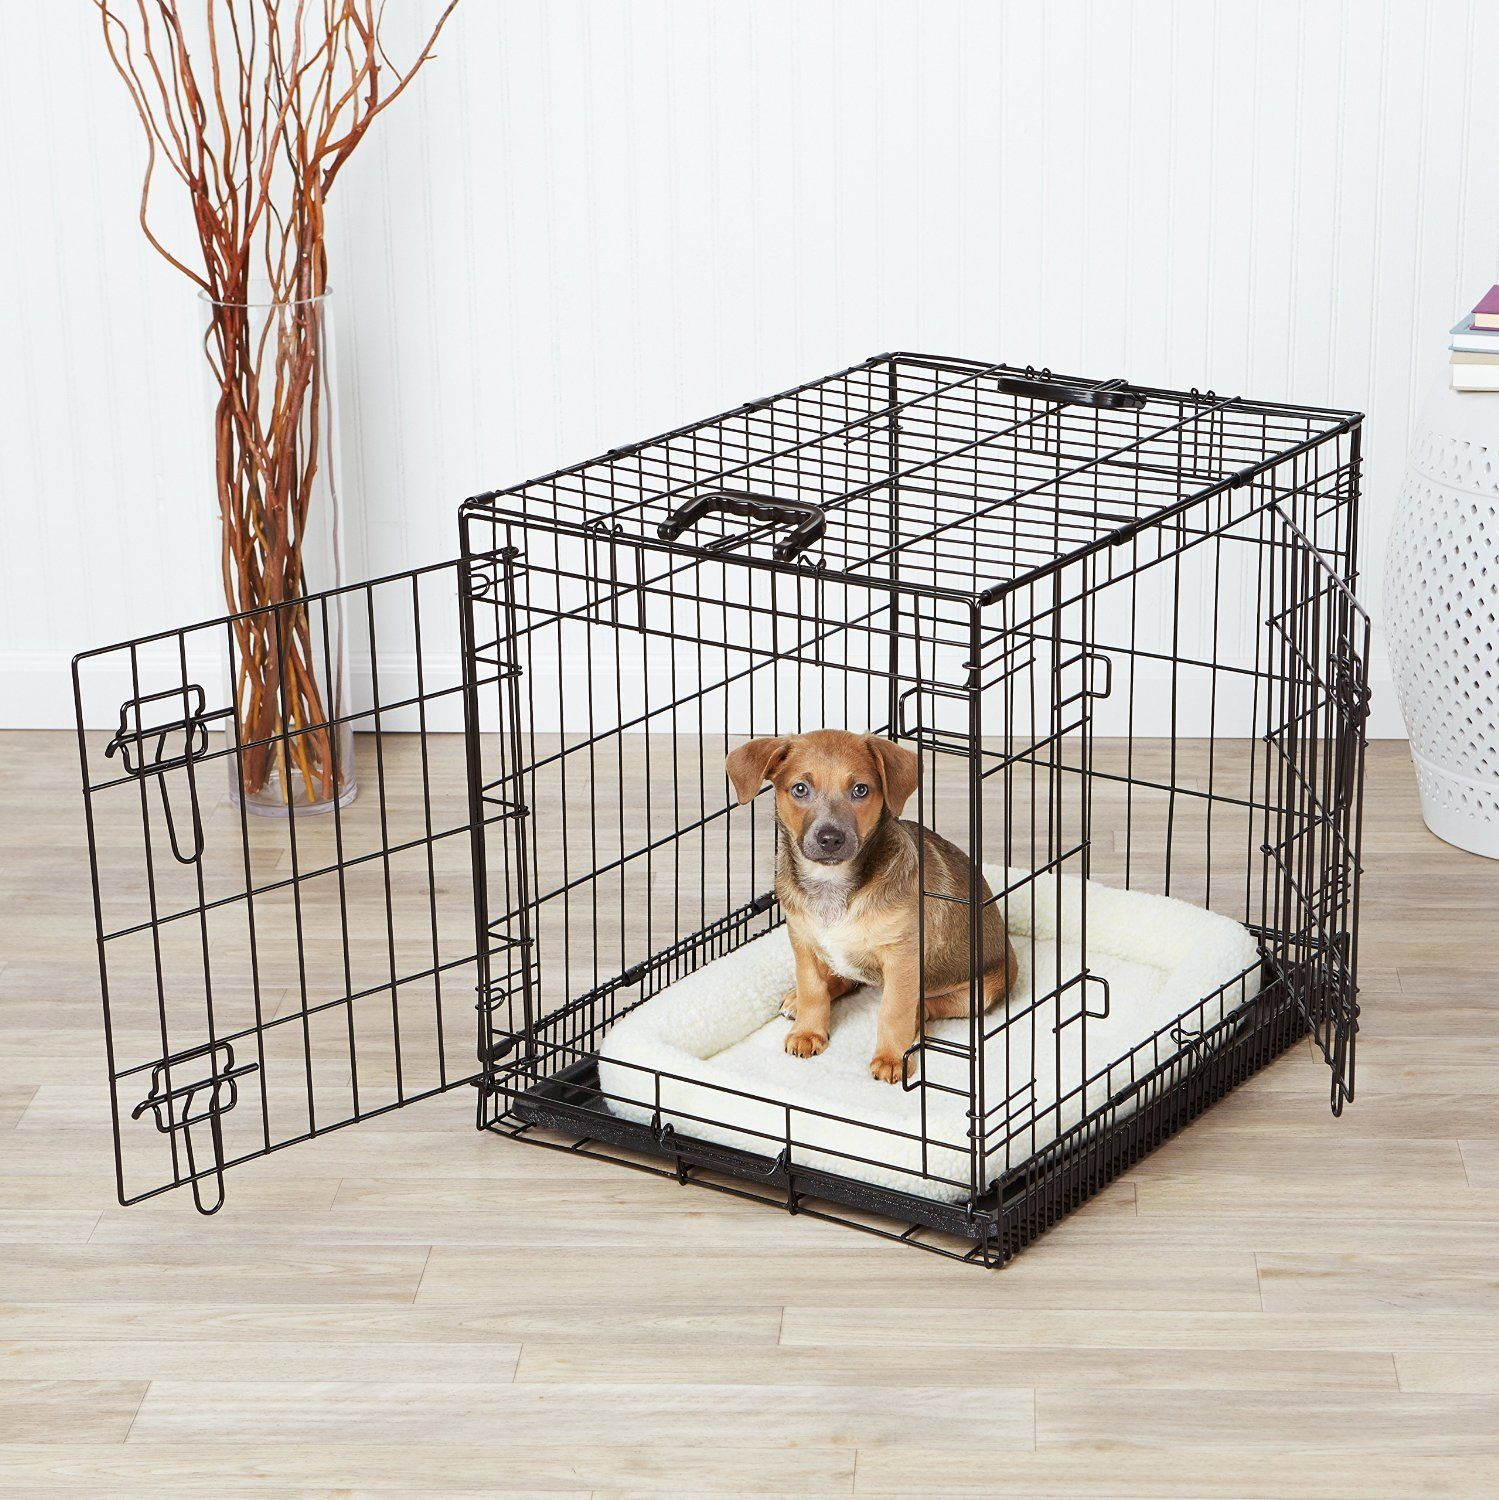 Amazonbasics Doubledoor Dog Crate And Padded Bolster Bed Small You Can Find More Details By Visiting The Image Link It Dog Cages Dog Crate Large Dog Crate